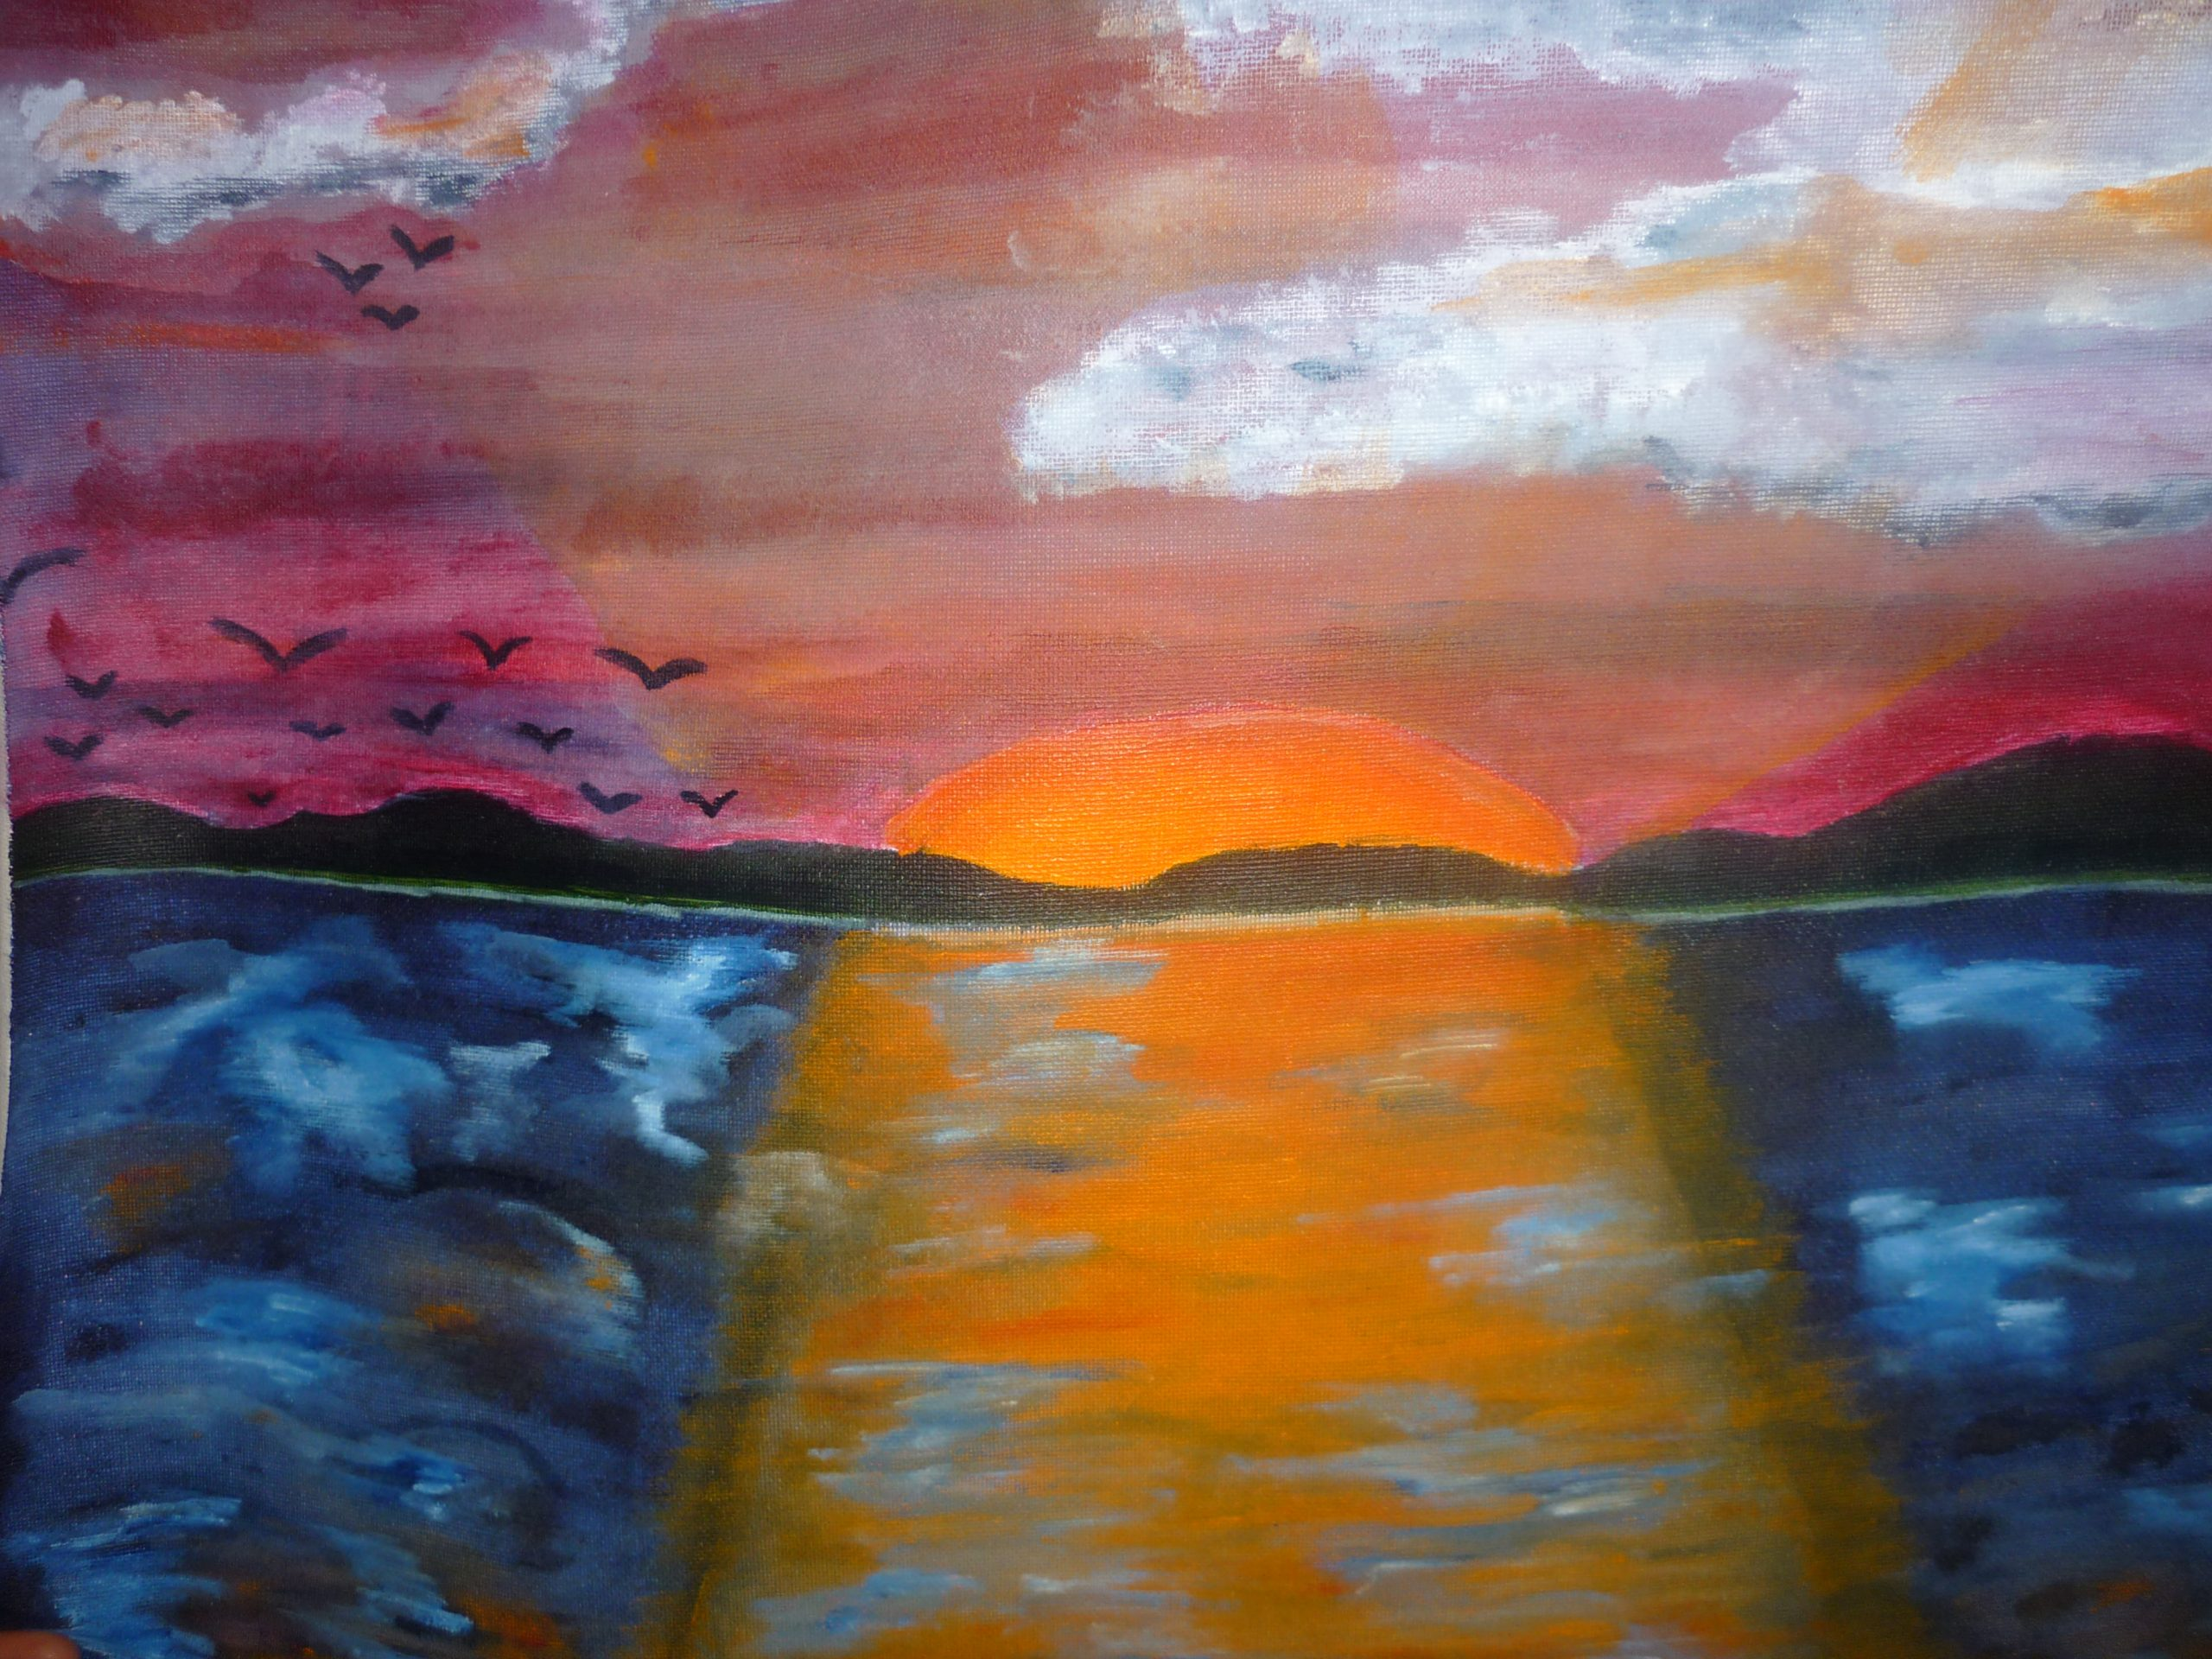 Rayna Pierre's painting of a beach sunset